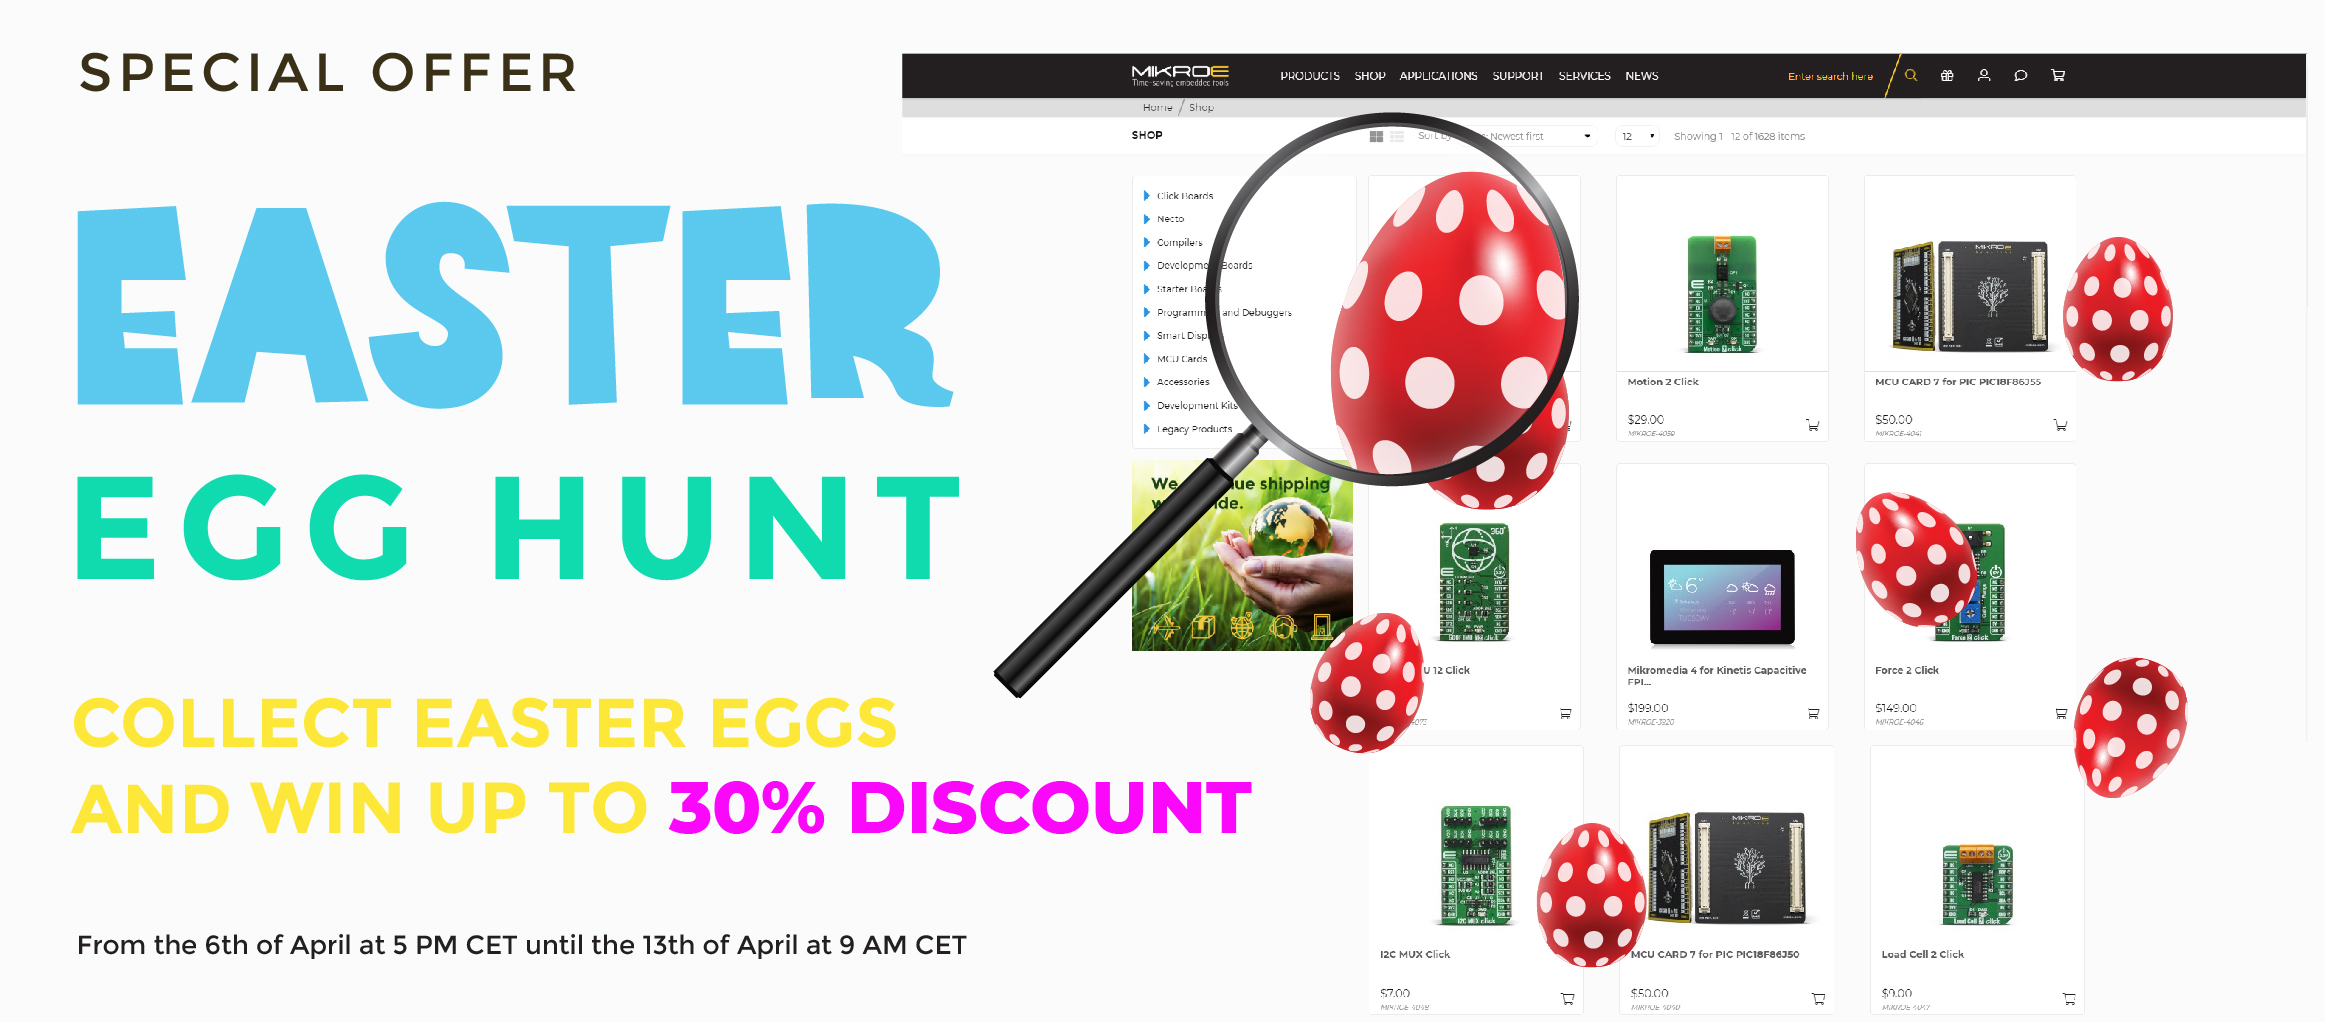 EASTER EGG HUNT has officially started!